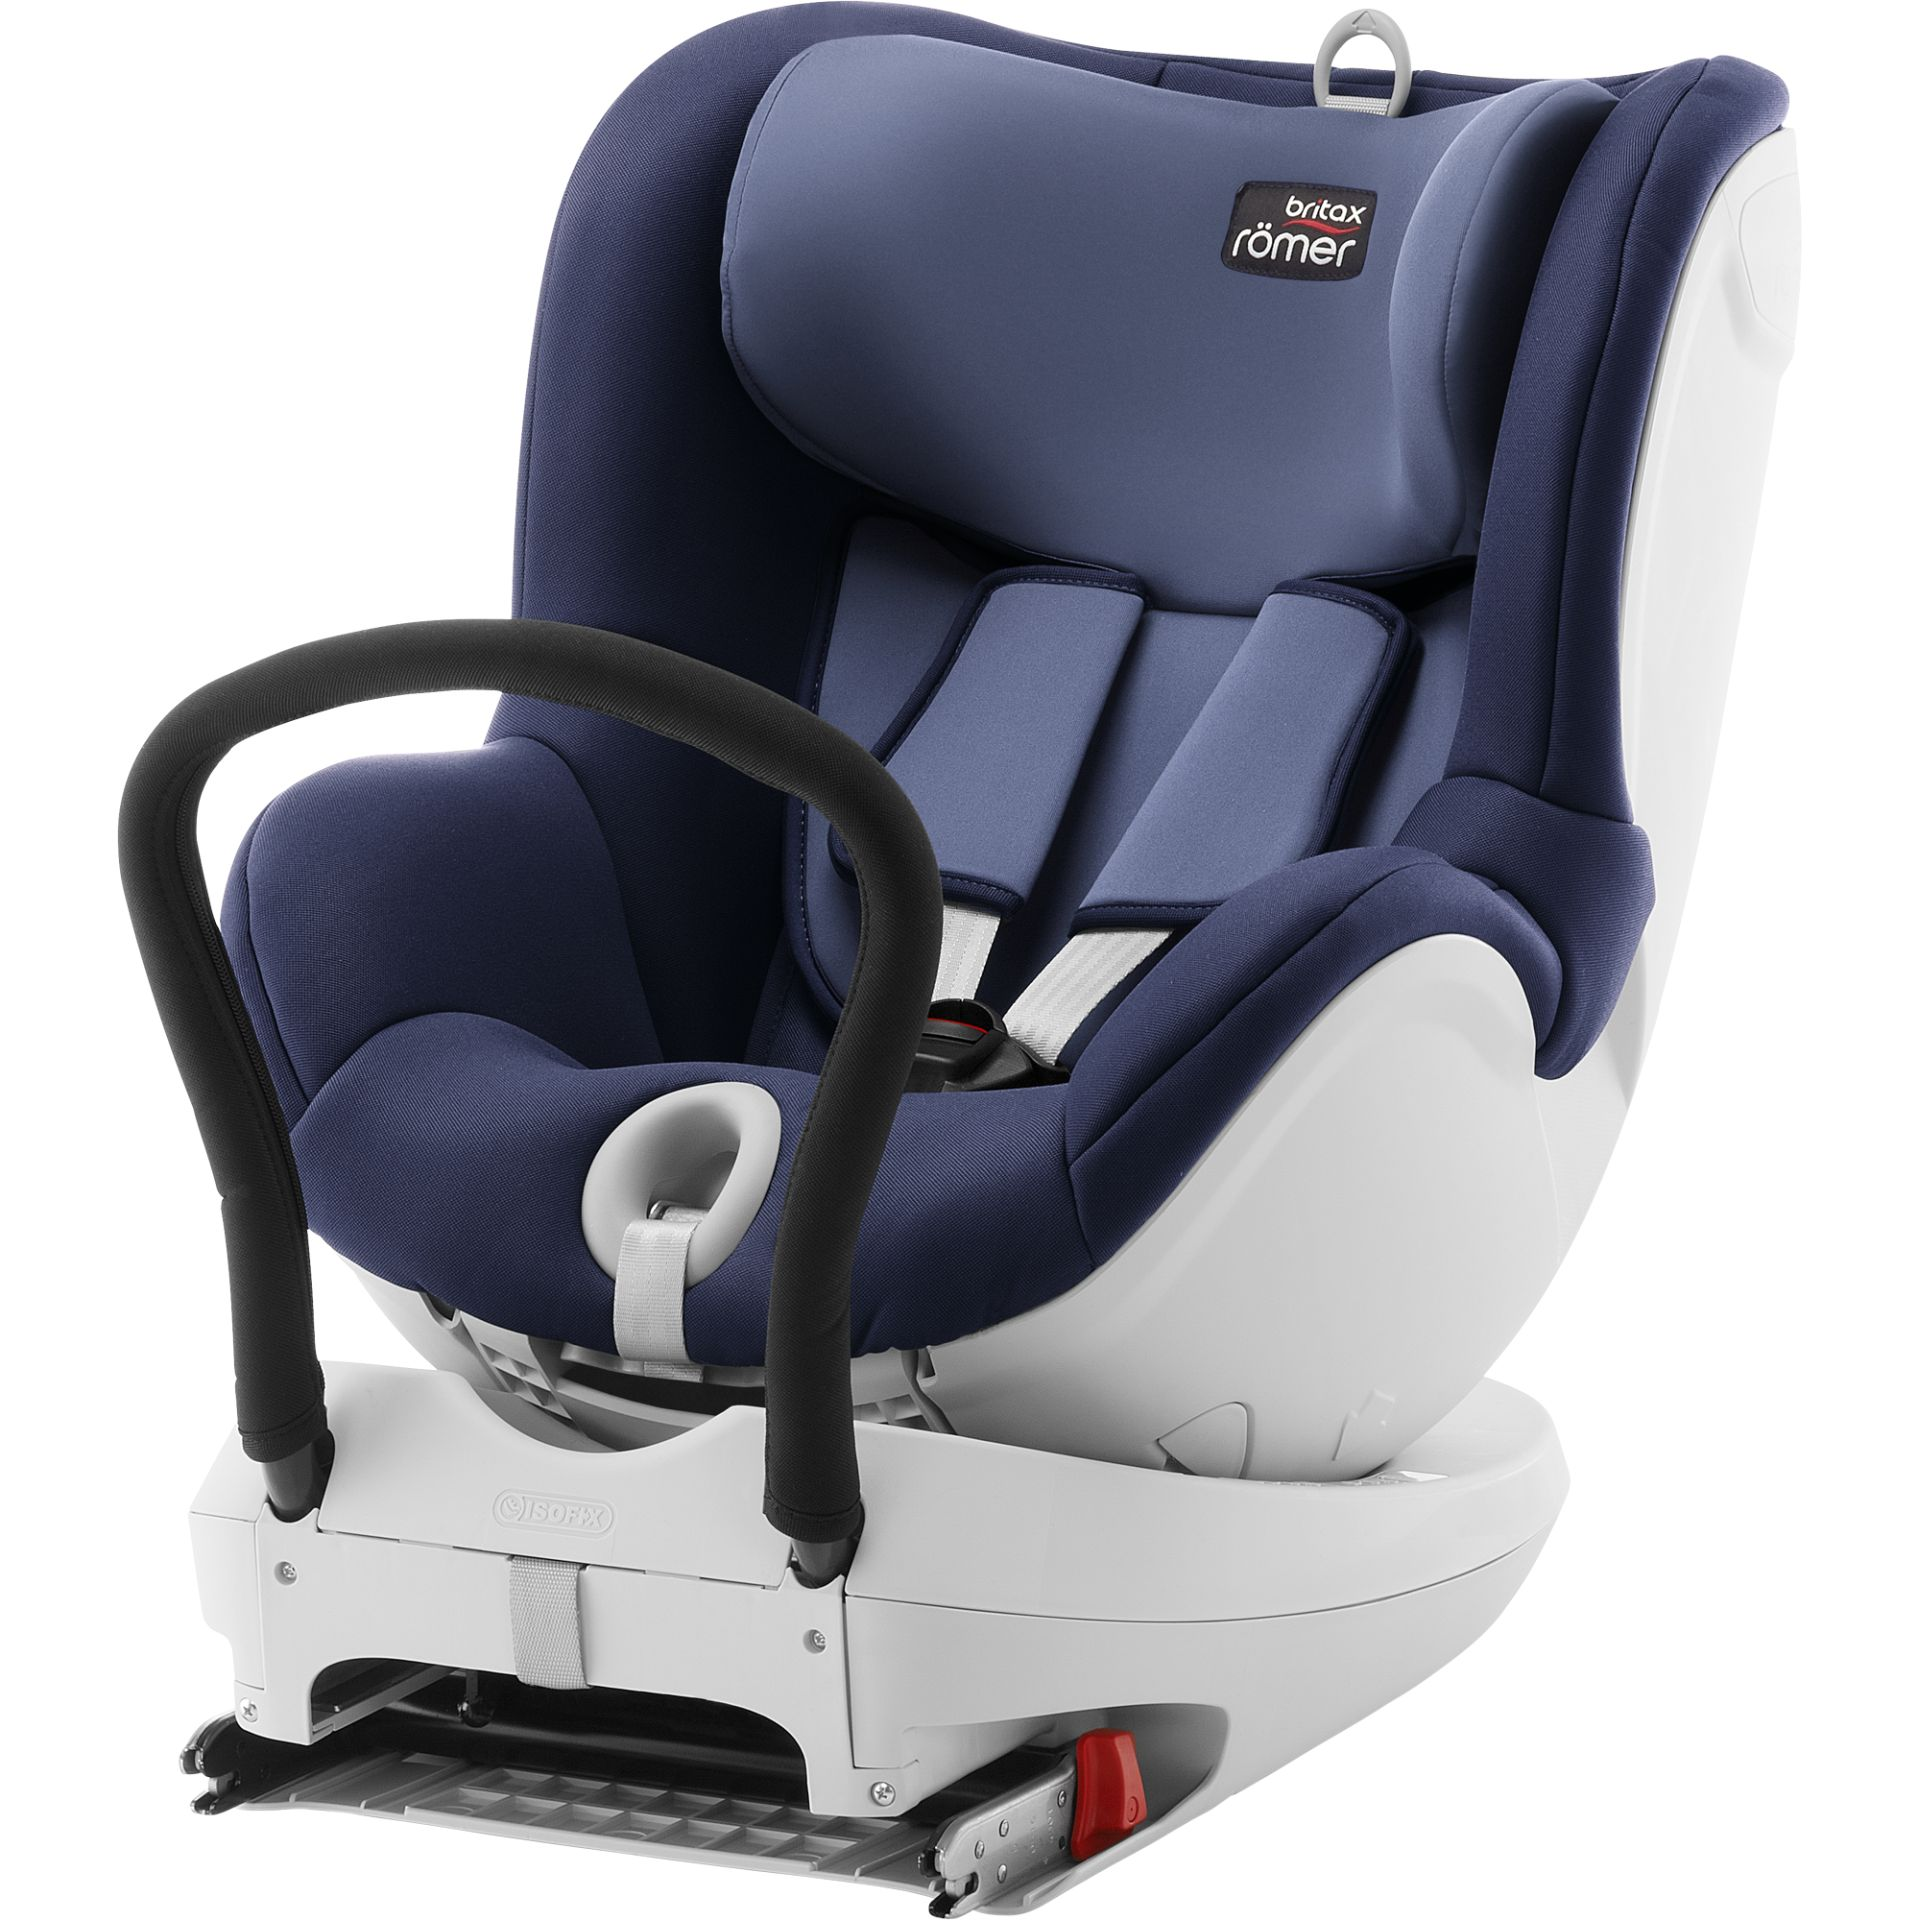 britax r mer car seat dualfix 2018 moonlight blue buy at kidsroom car seats isofix child. Black Bedroom Furniture Sets. Home Design Ideas